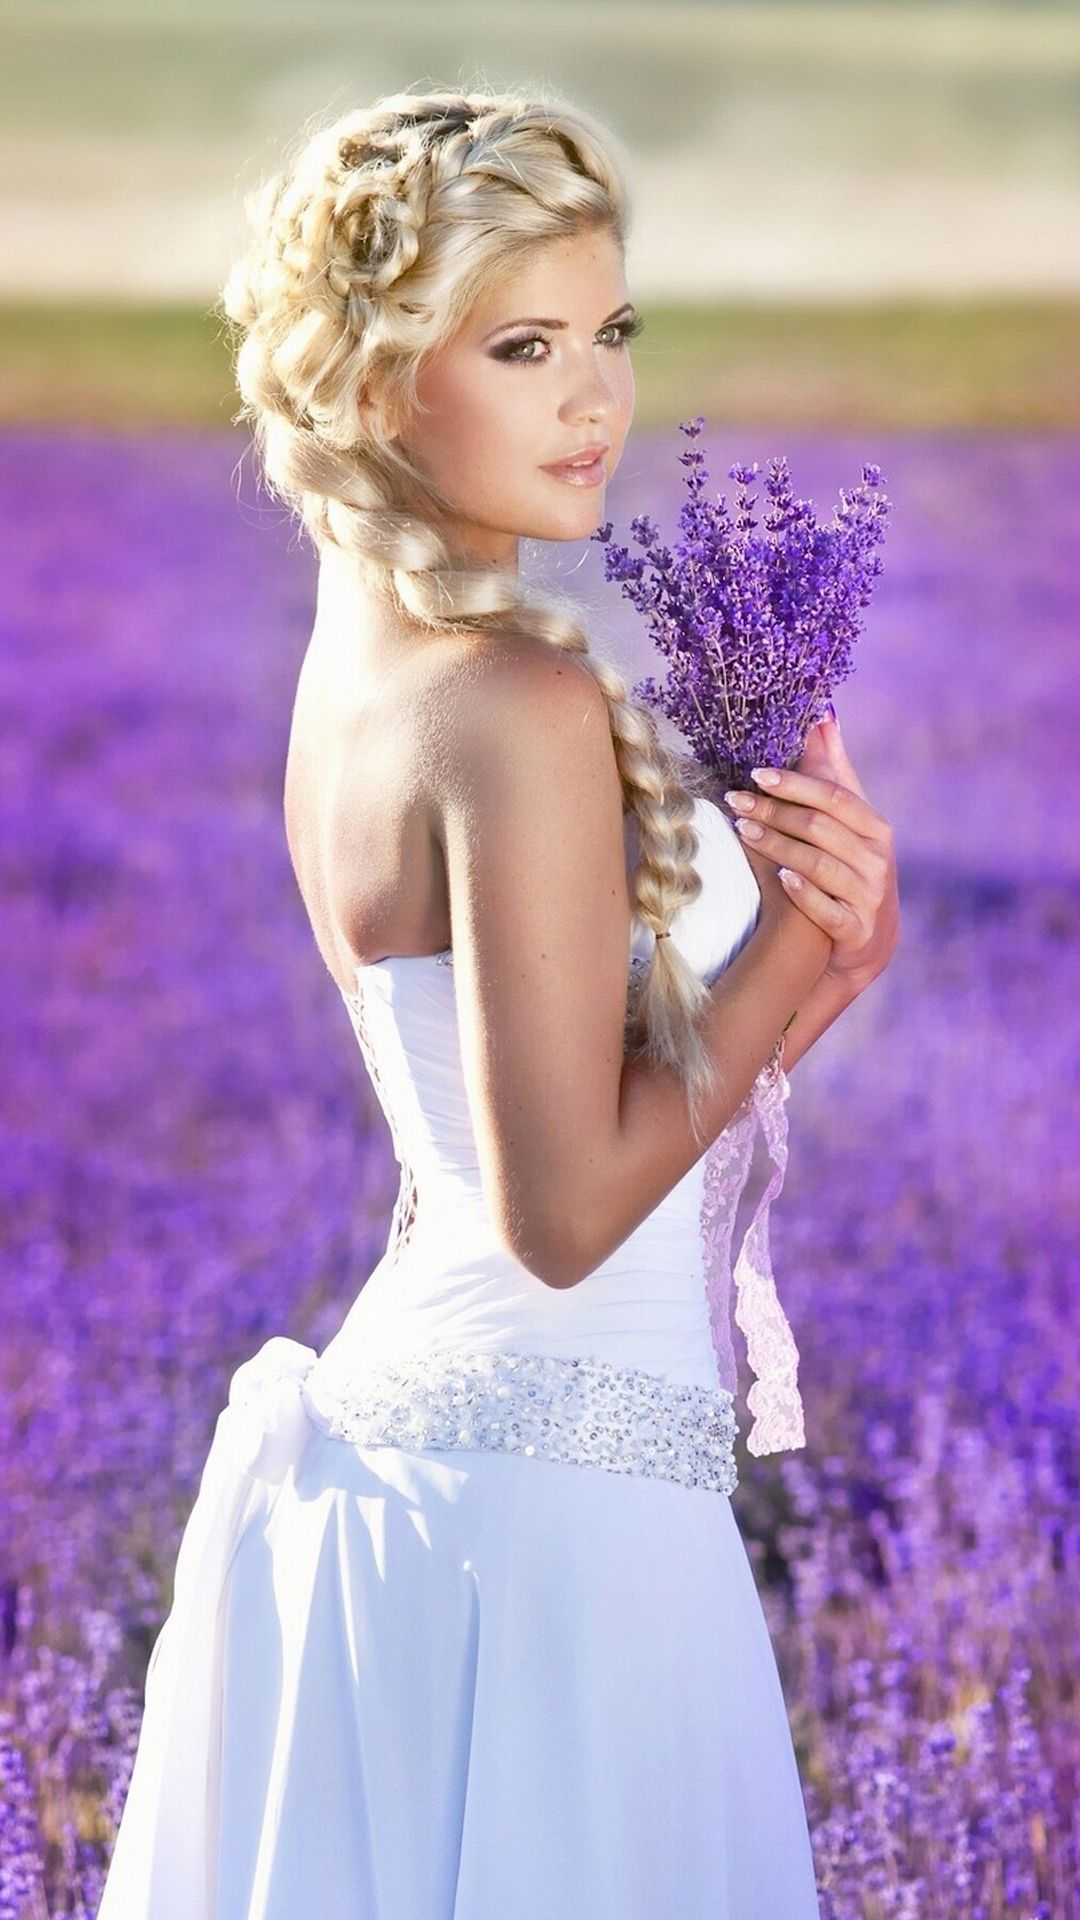 98f547cd1c Beautiful Girl on Lavender Field - http   helpyourselfimages.com portfolio